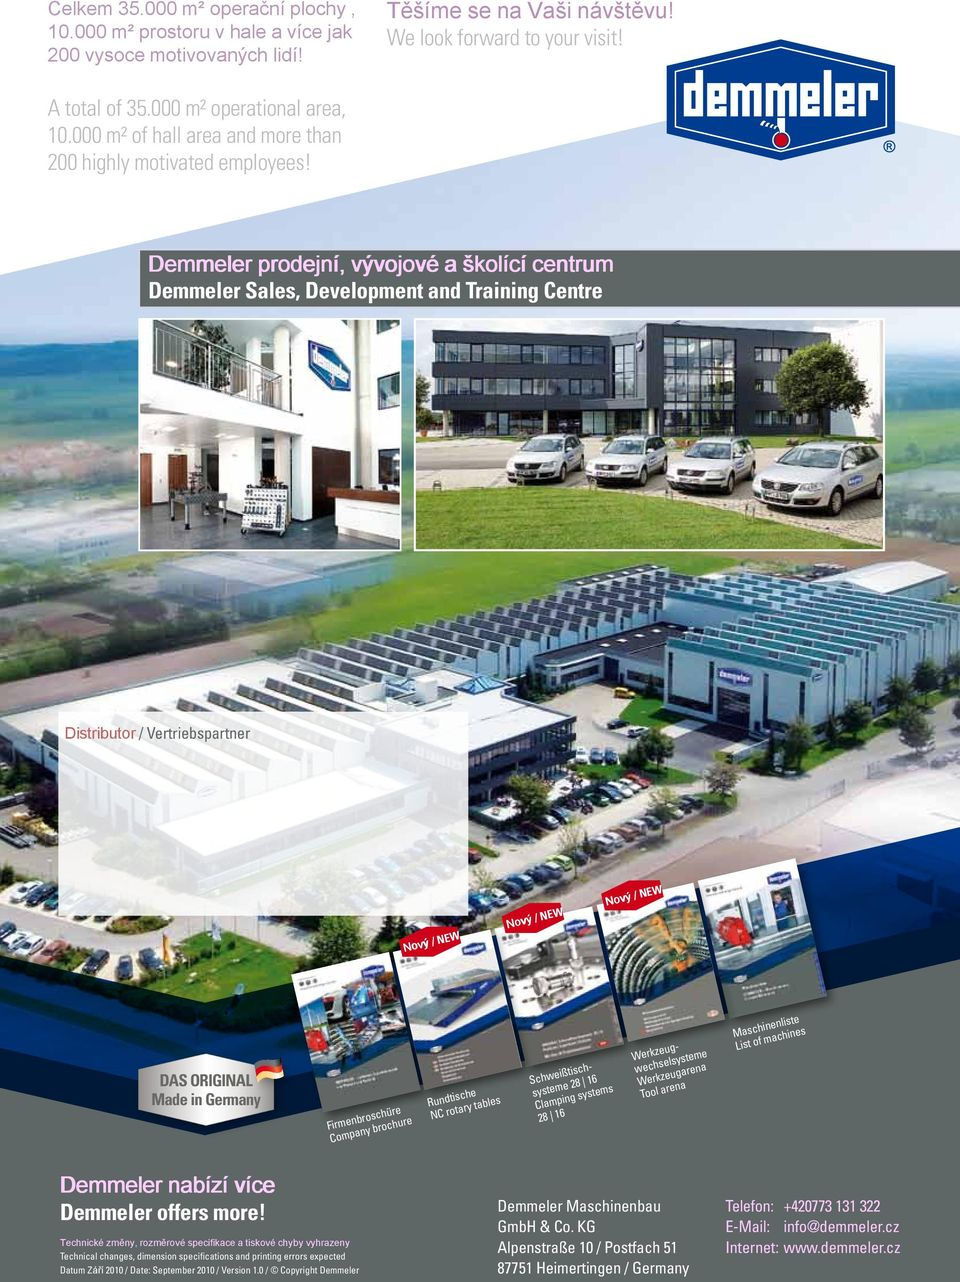 Demmeler prodejní, vývojové a školící centrum Demmeler Sales, Development and Training Centre Distributor / Vertriebspartner Nový / NEW Nový / NEW Nový / NEW DAS ORIGINAL Made in Germany